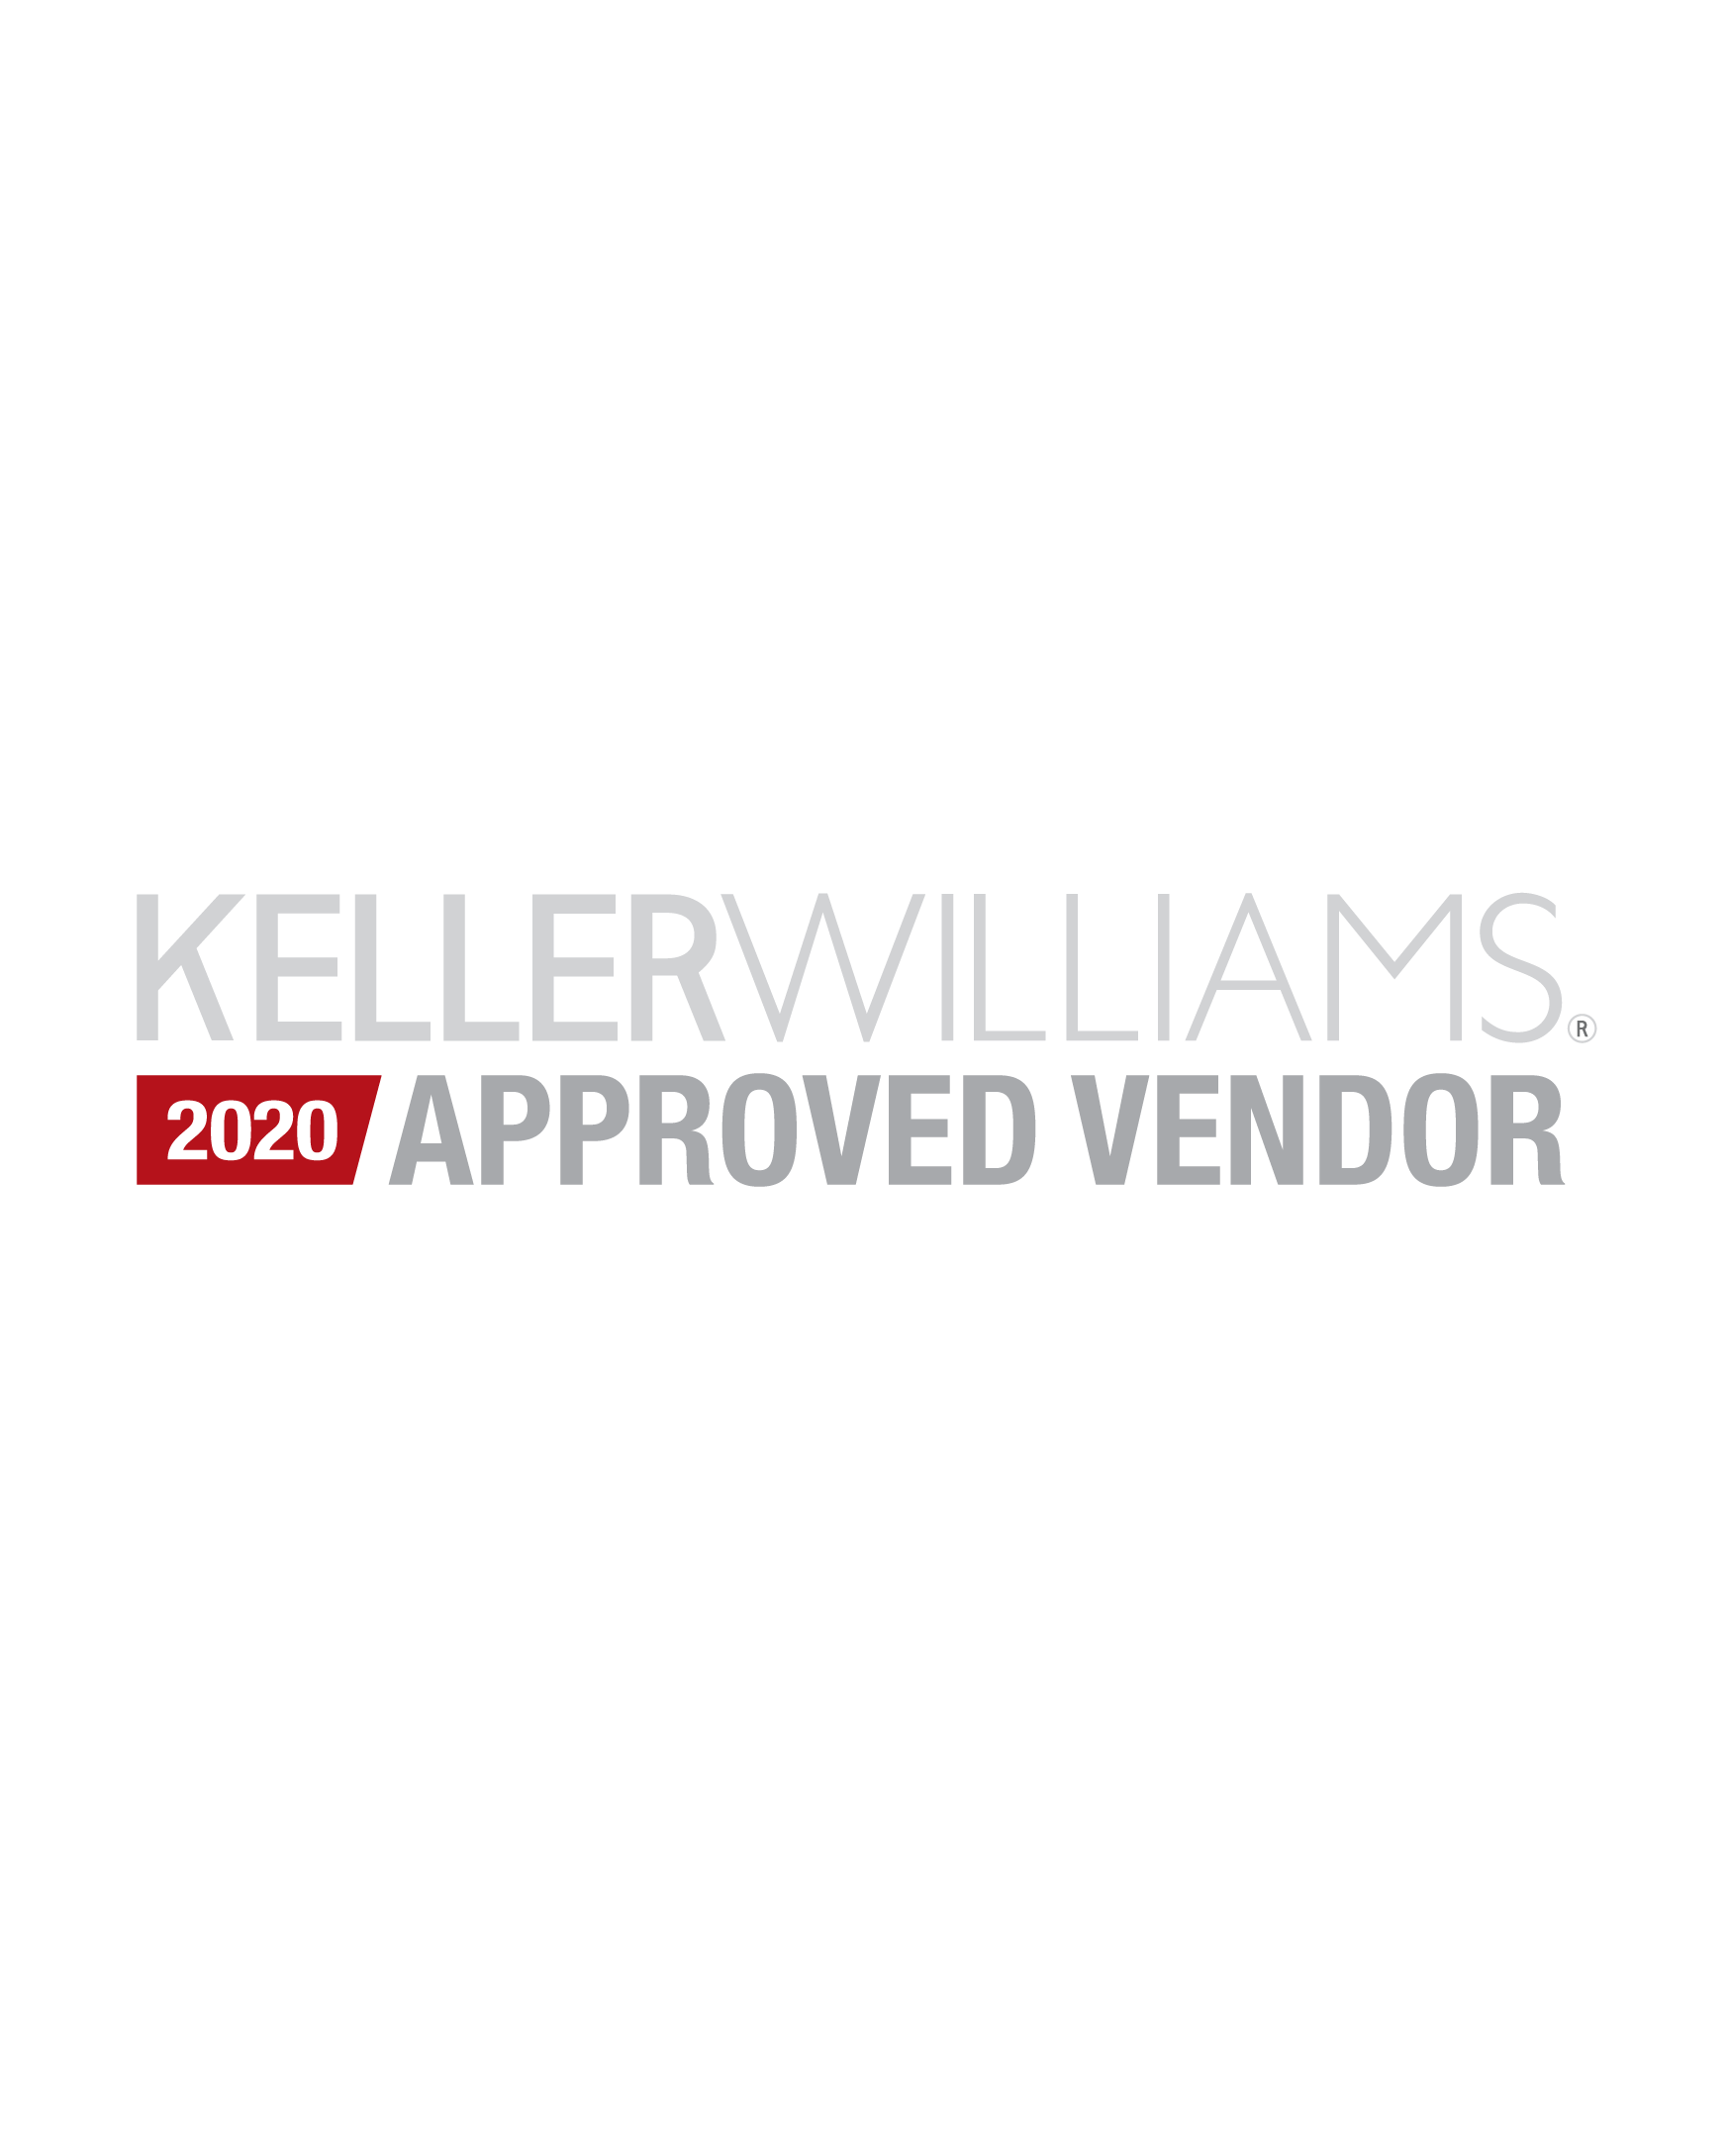 kw-approved-vendor-logo